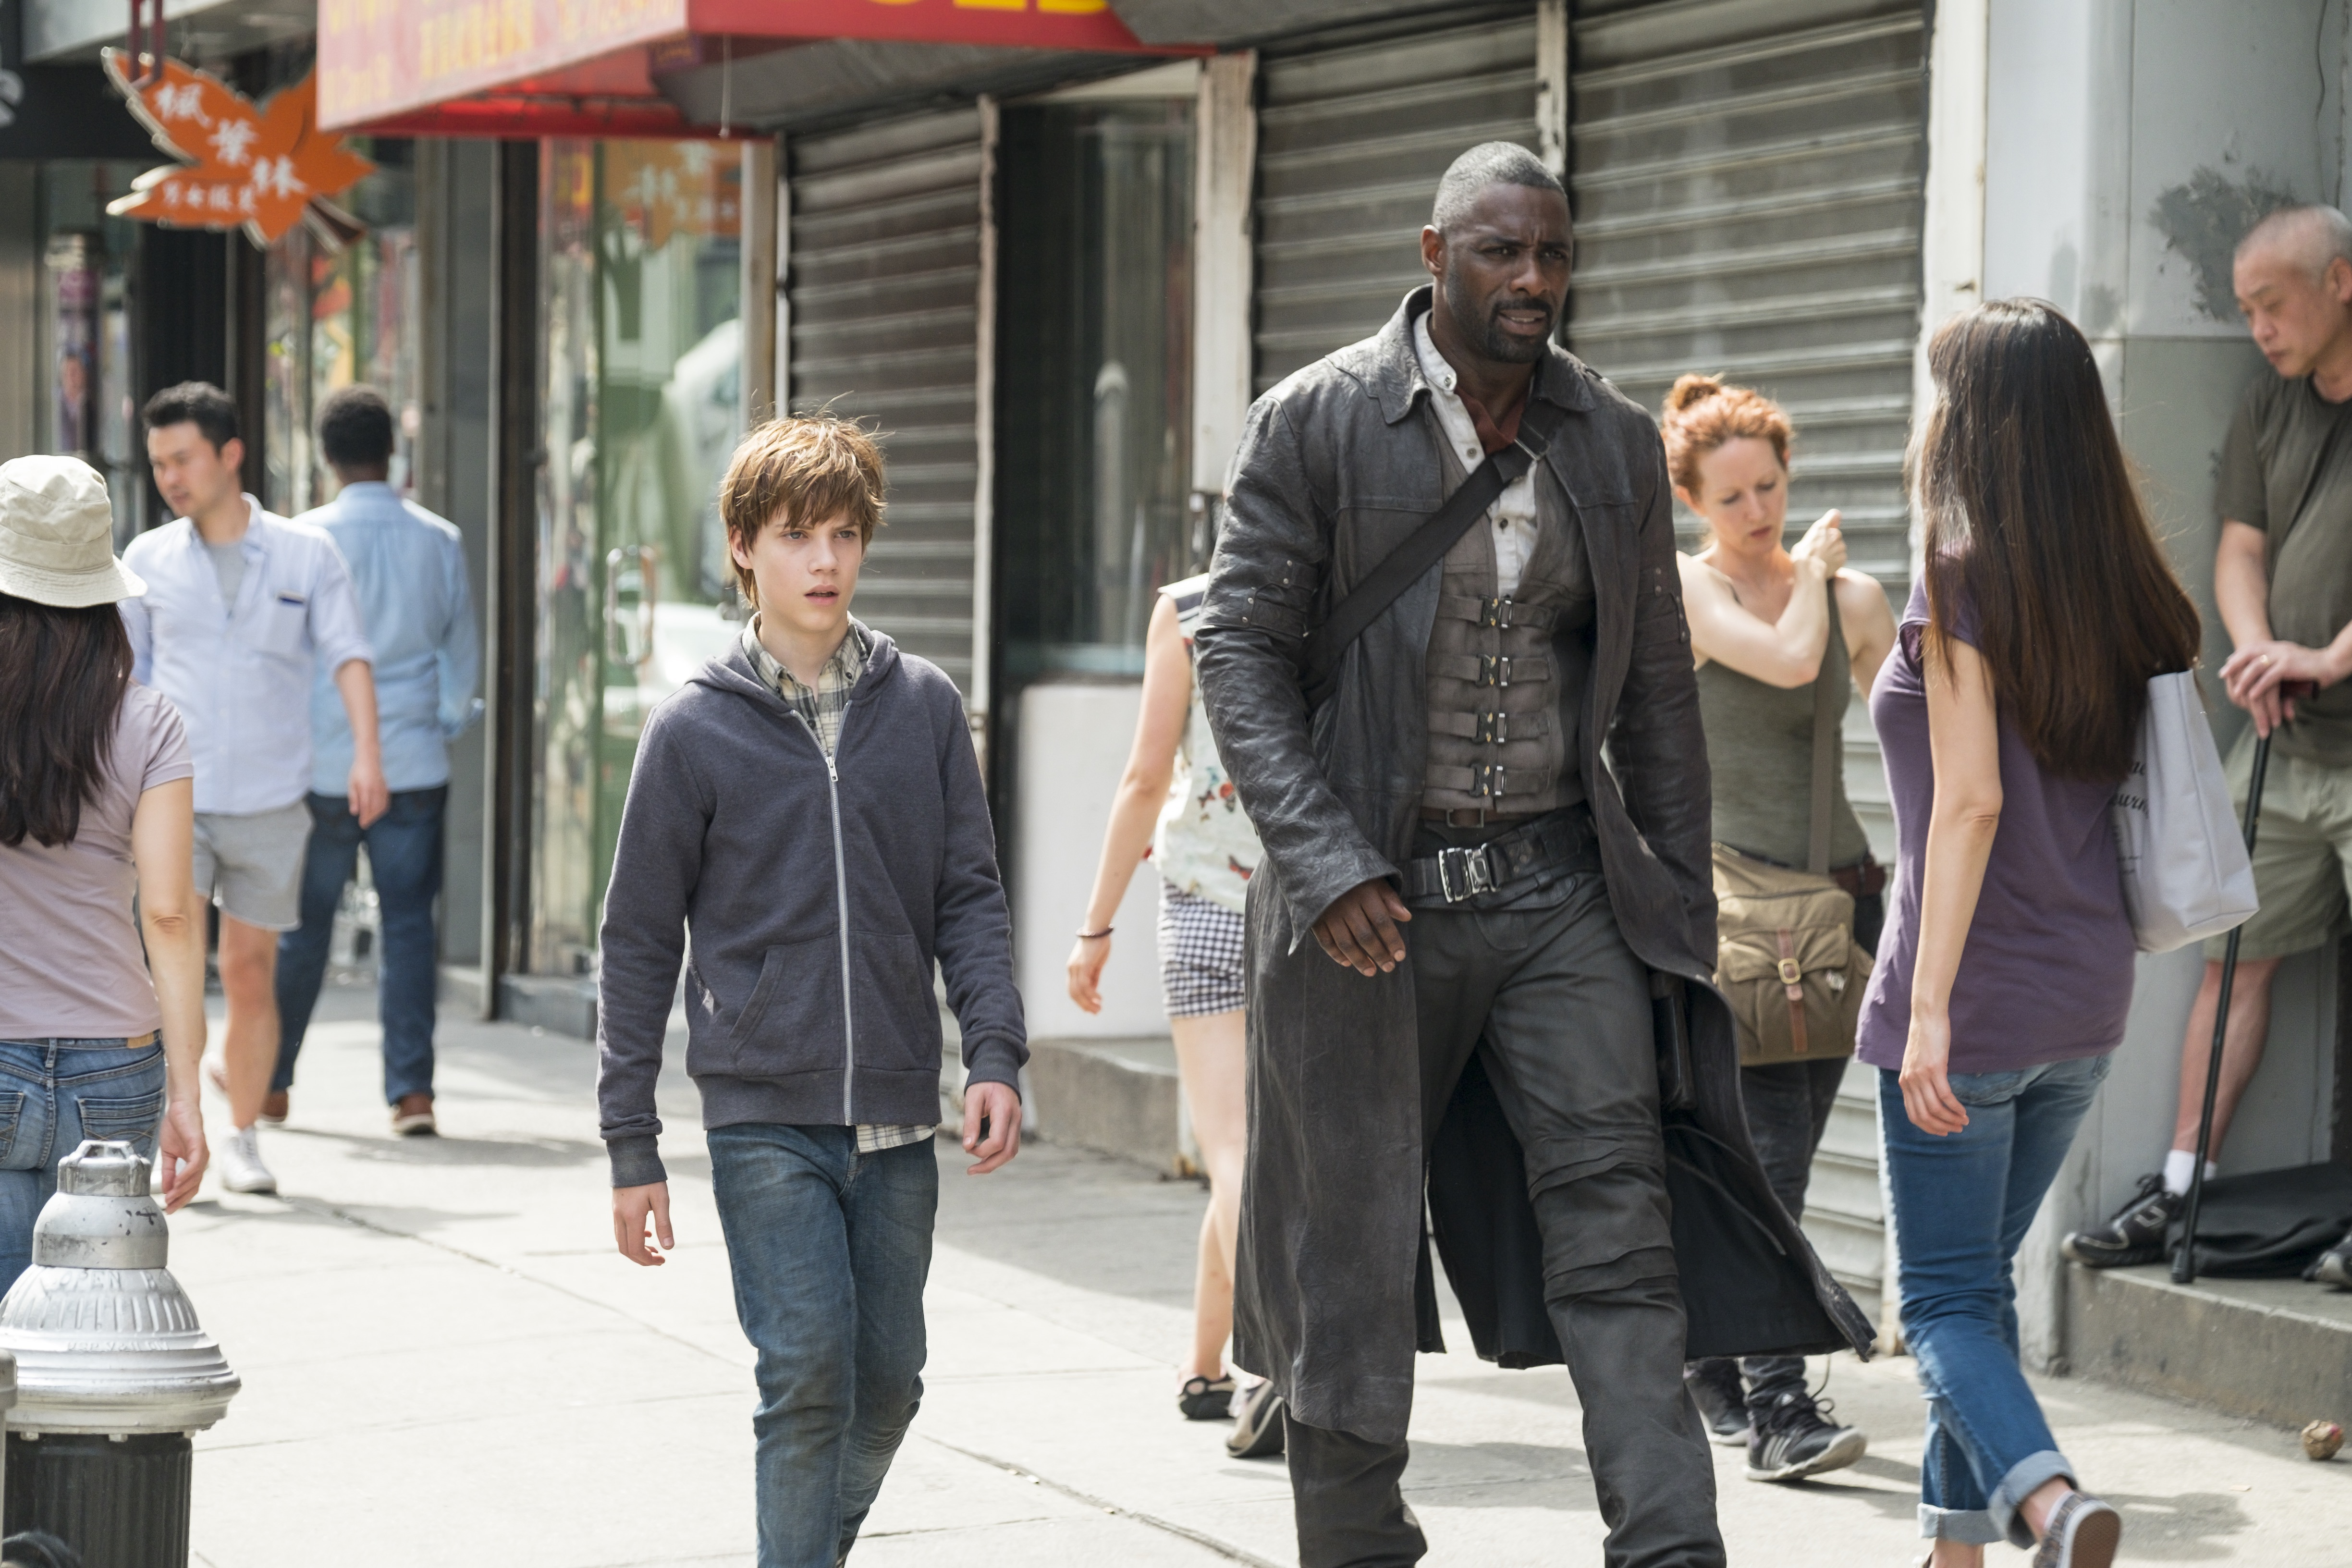 Jake Chambers (Tom Taylor) and Roland (Idris Elba) in Columbia Pictures' THE DARK TOWER.